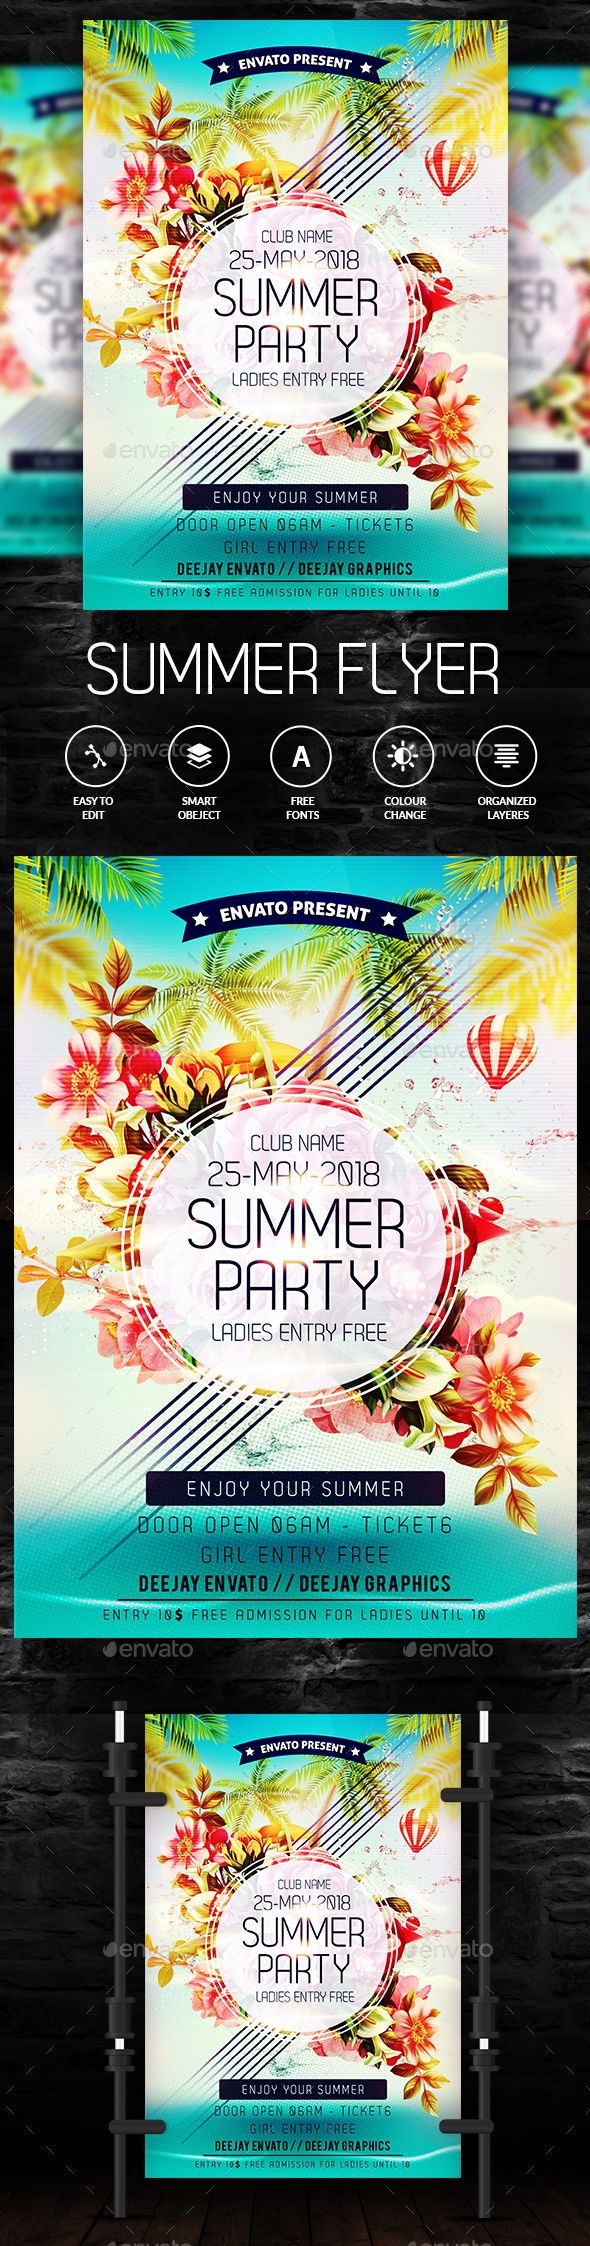 Summer Party Flyer — Photoshop PSD #flyer #flowers • Available here → https://graphicriver.net/item/summer-party-flyer/19879922?ref=pxcr